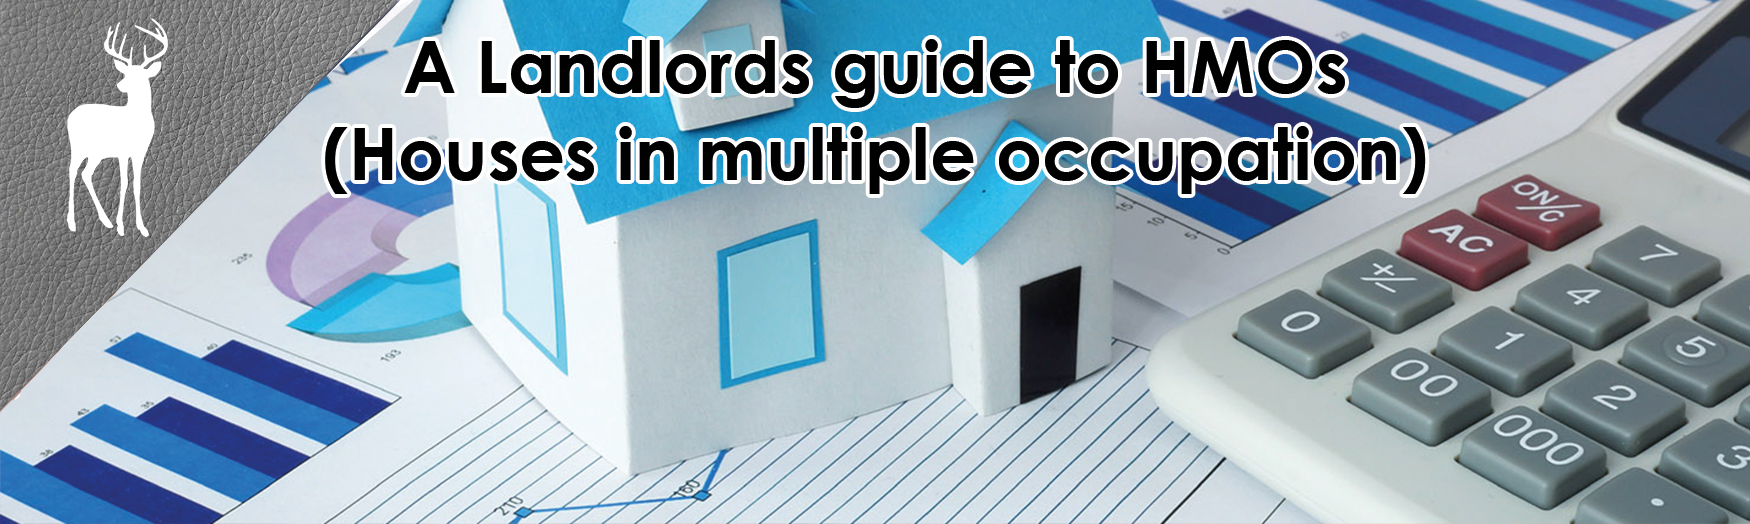 A Landlords guide to HMOs (Houses in multiple occupation)